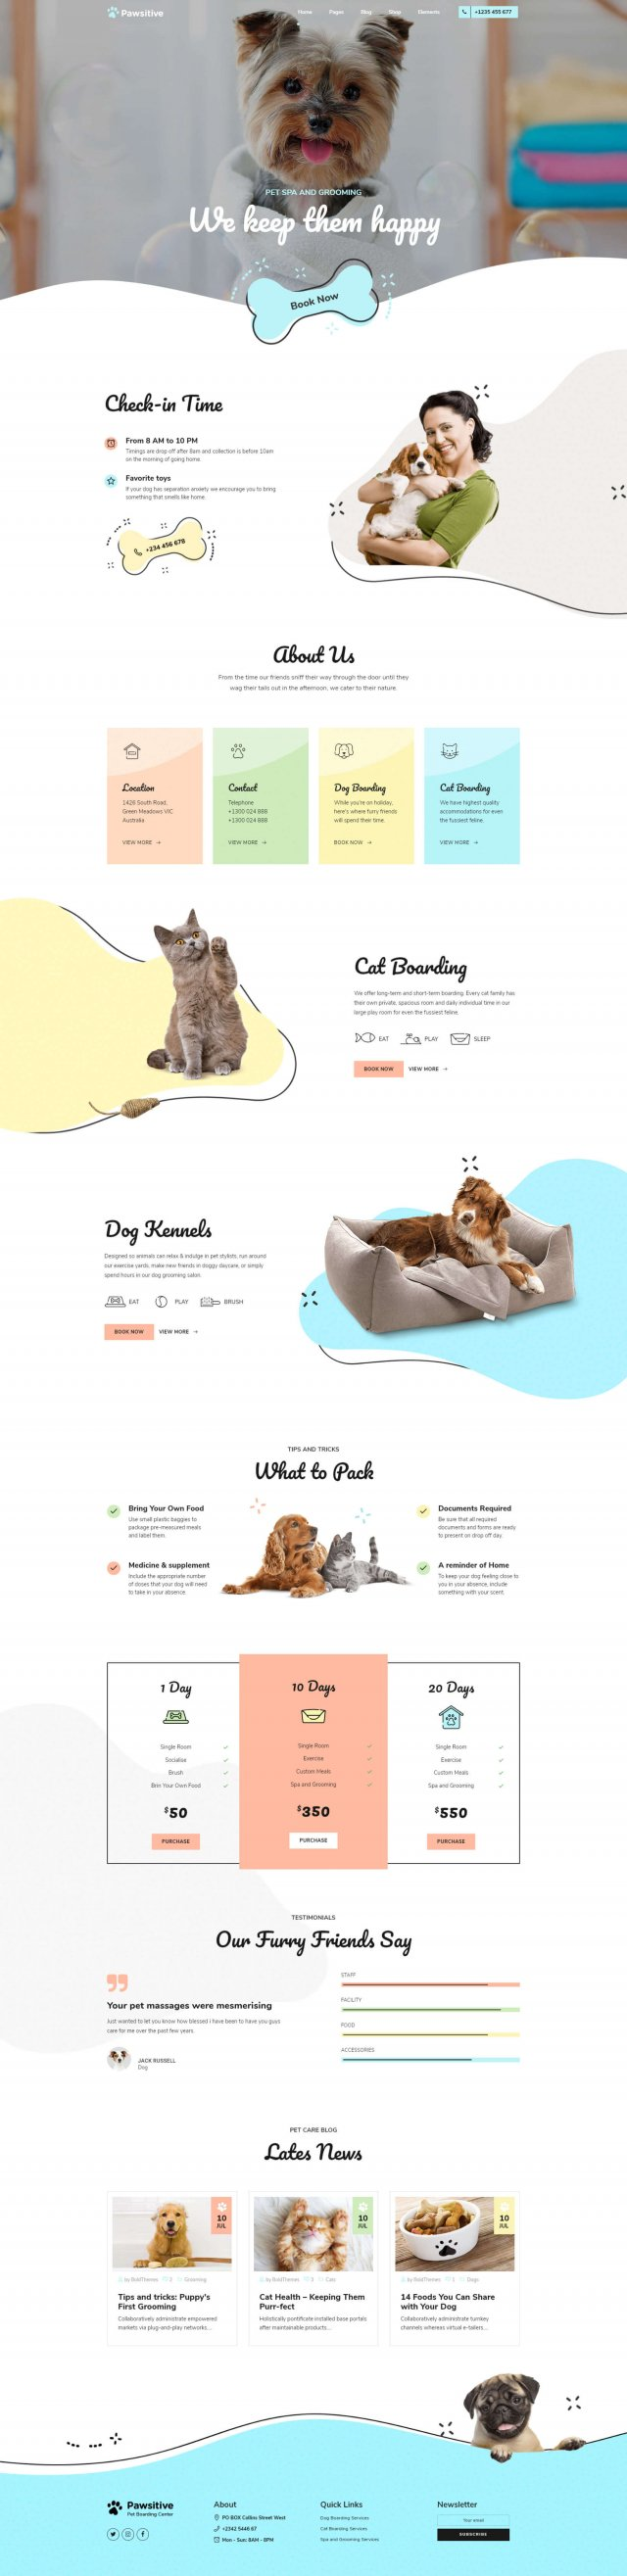 http://pawsitive.bold-themes.com/wp-content/uploads/2019/09/Coco-Home-02-640x2630.jpg